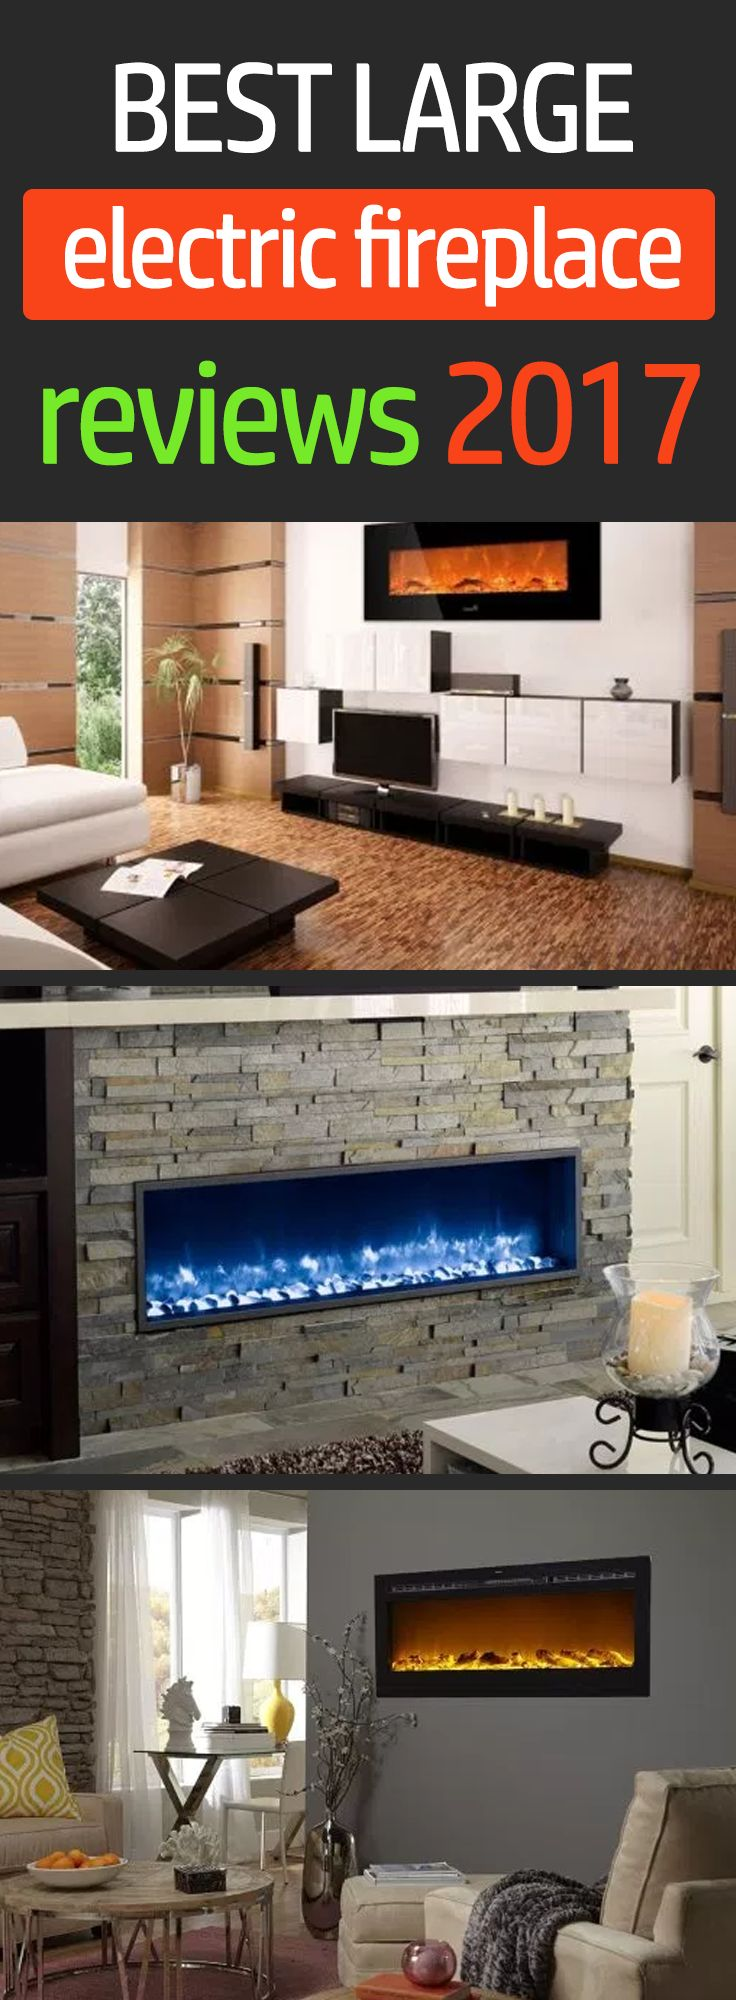 how do electric fireplaces work home design inspirations